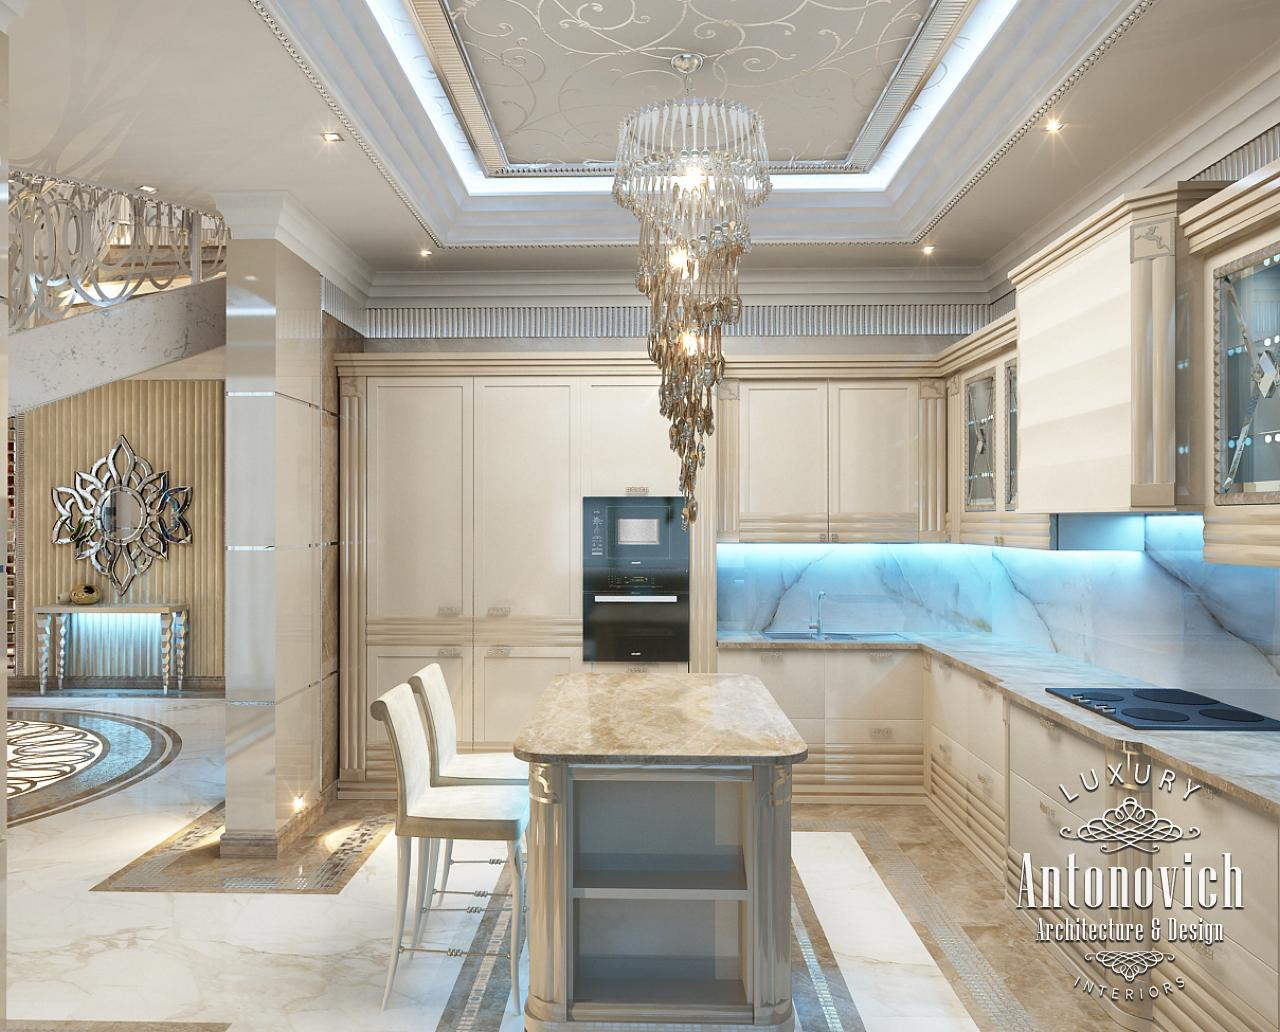 Luxury antonovich design uae luxury interior design dubai for Interior designer